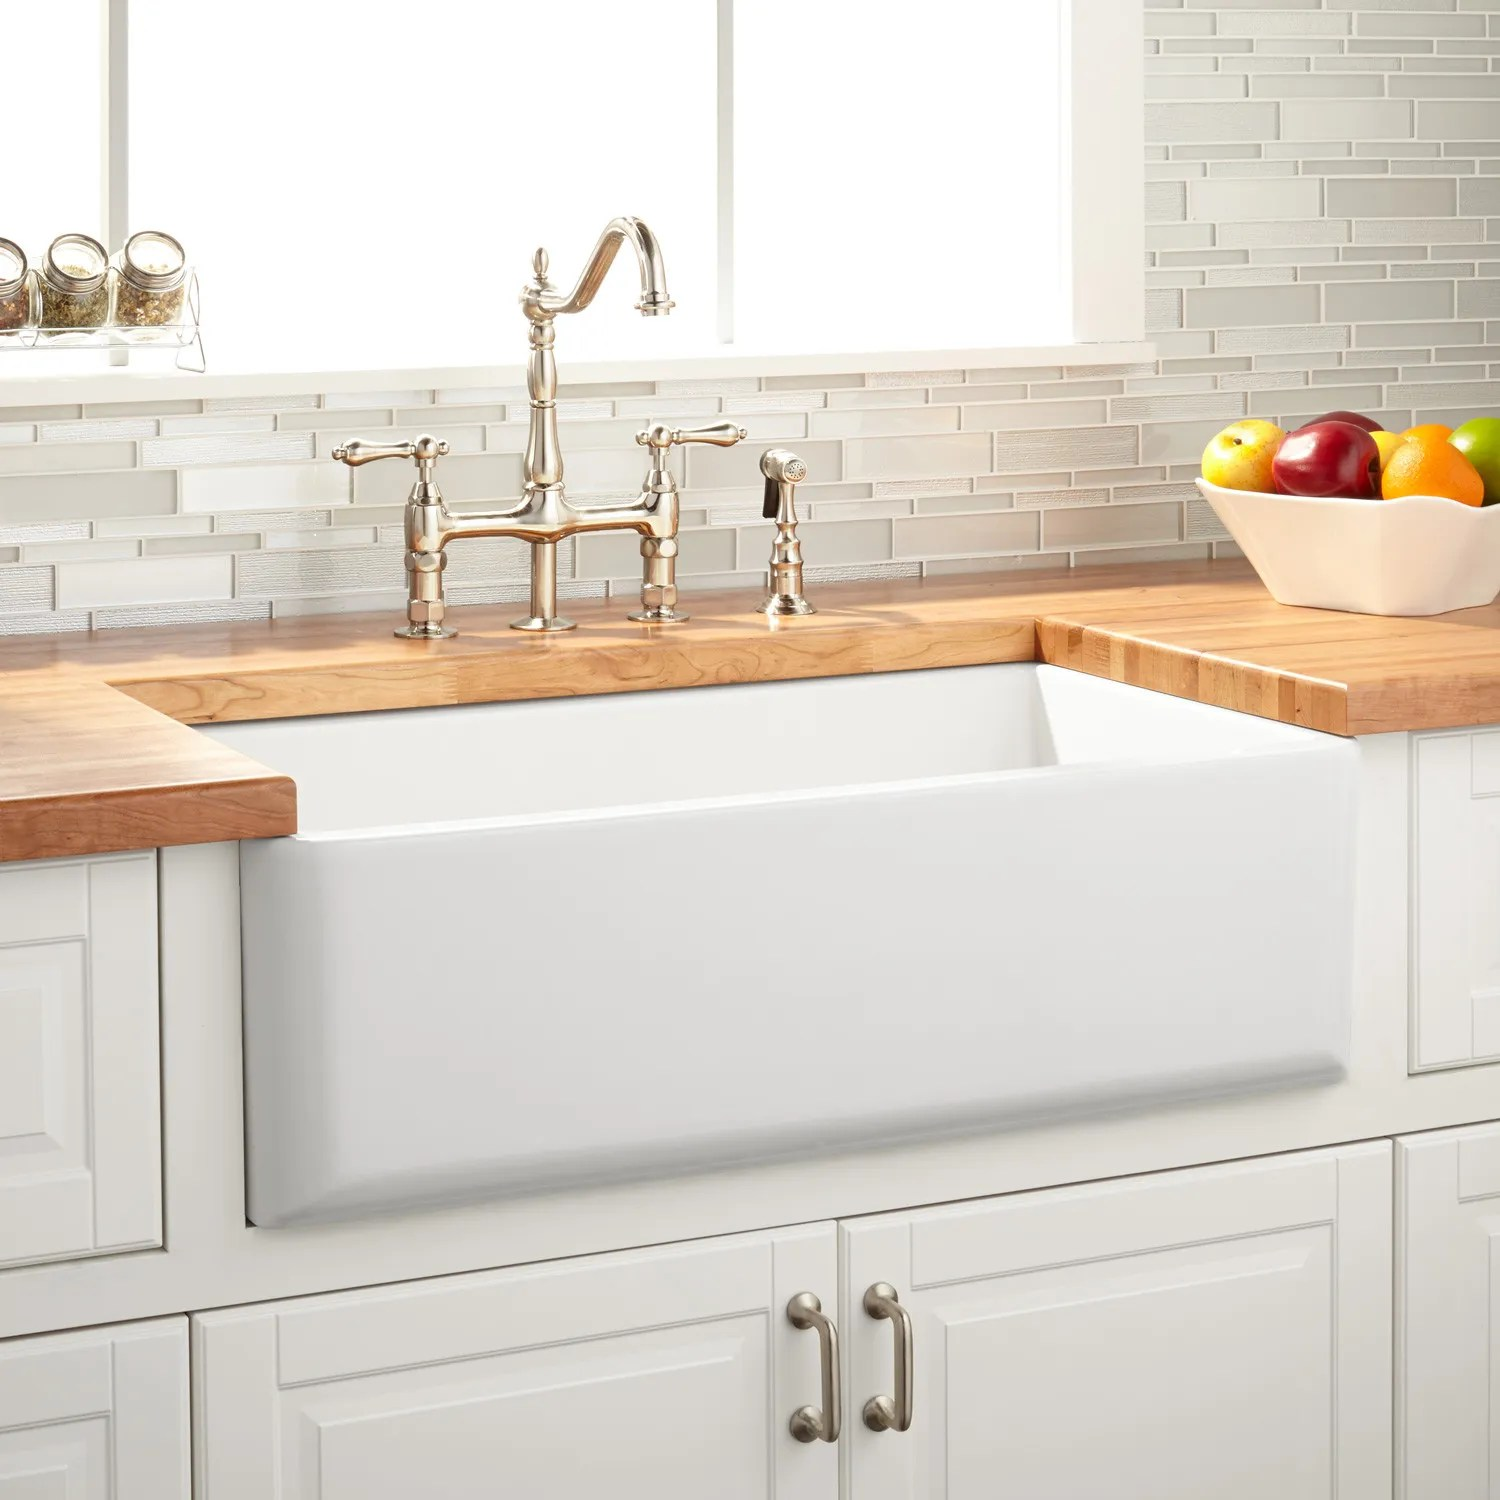 33 grigham reversible farmhouse sink smooth apron white farm kitchen sink 33 Grigham Reversible Farmhouse Sink Smooth Apron White